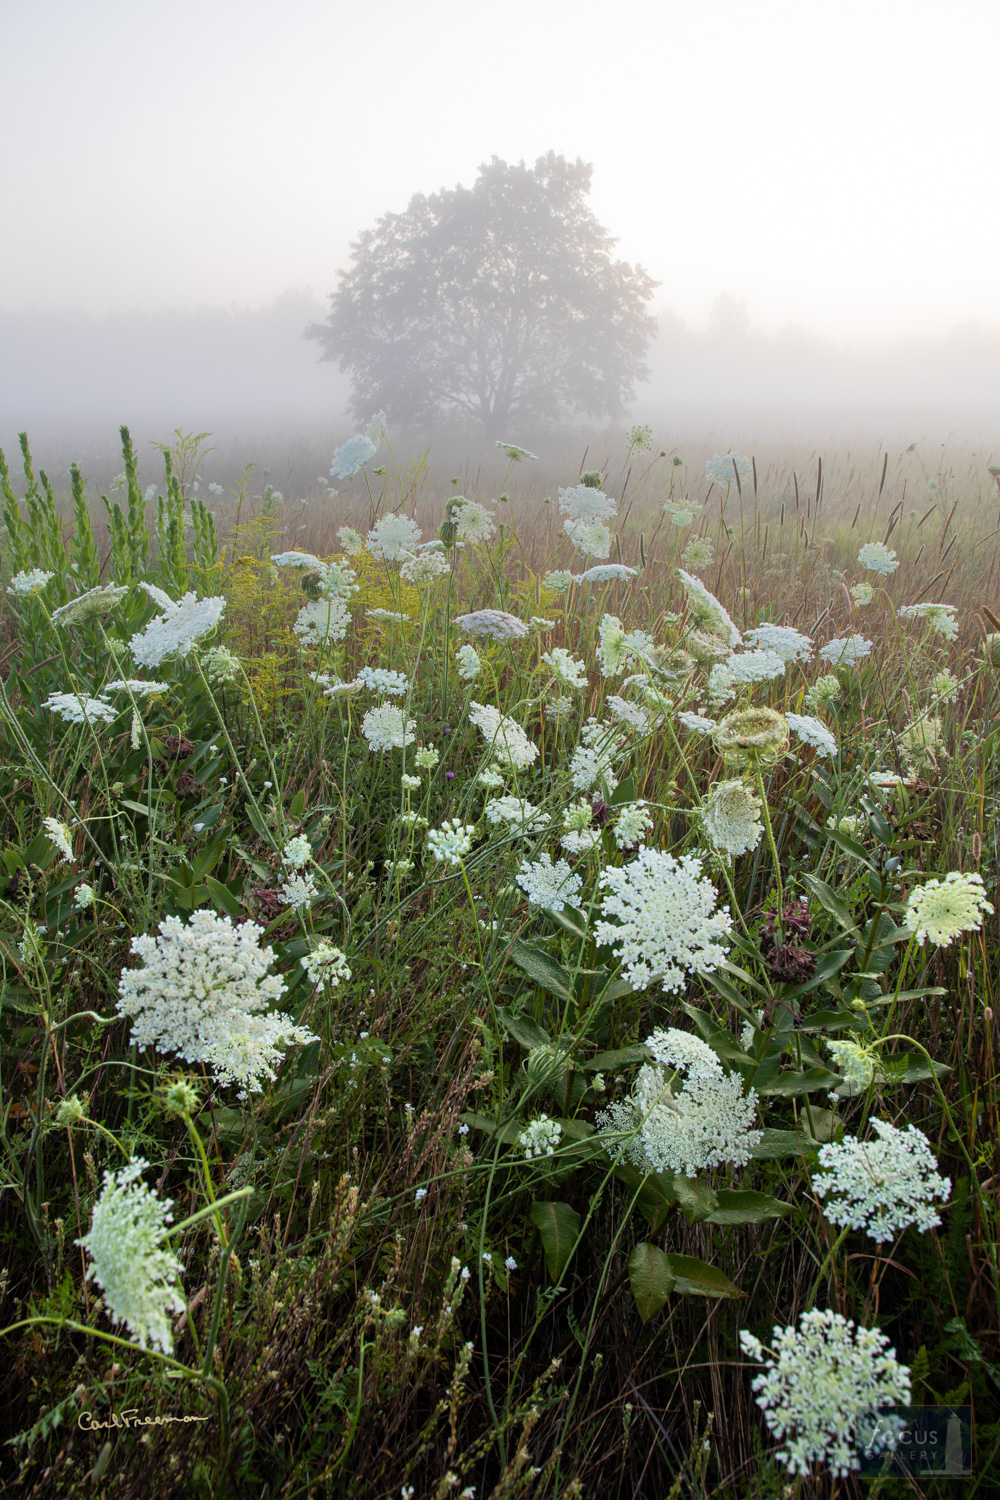 Photo © Carl Freeman Queen Ann's Lace decorate the Dryhill Grasslands off of Keillor Road. This image was taken on land protected...